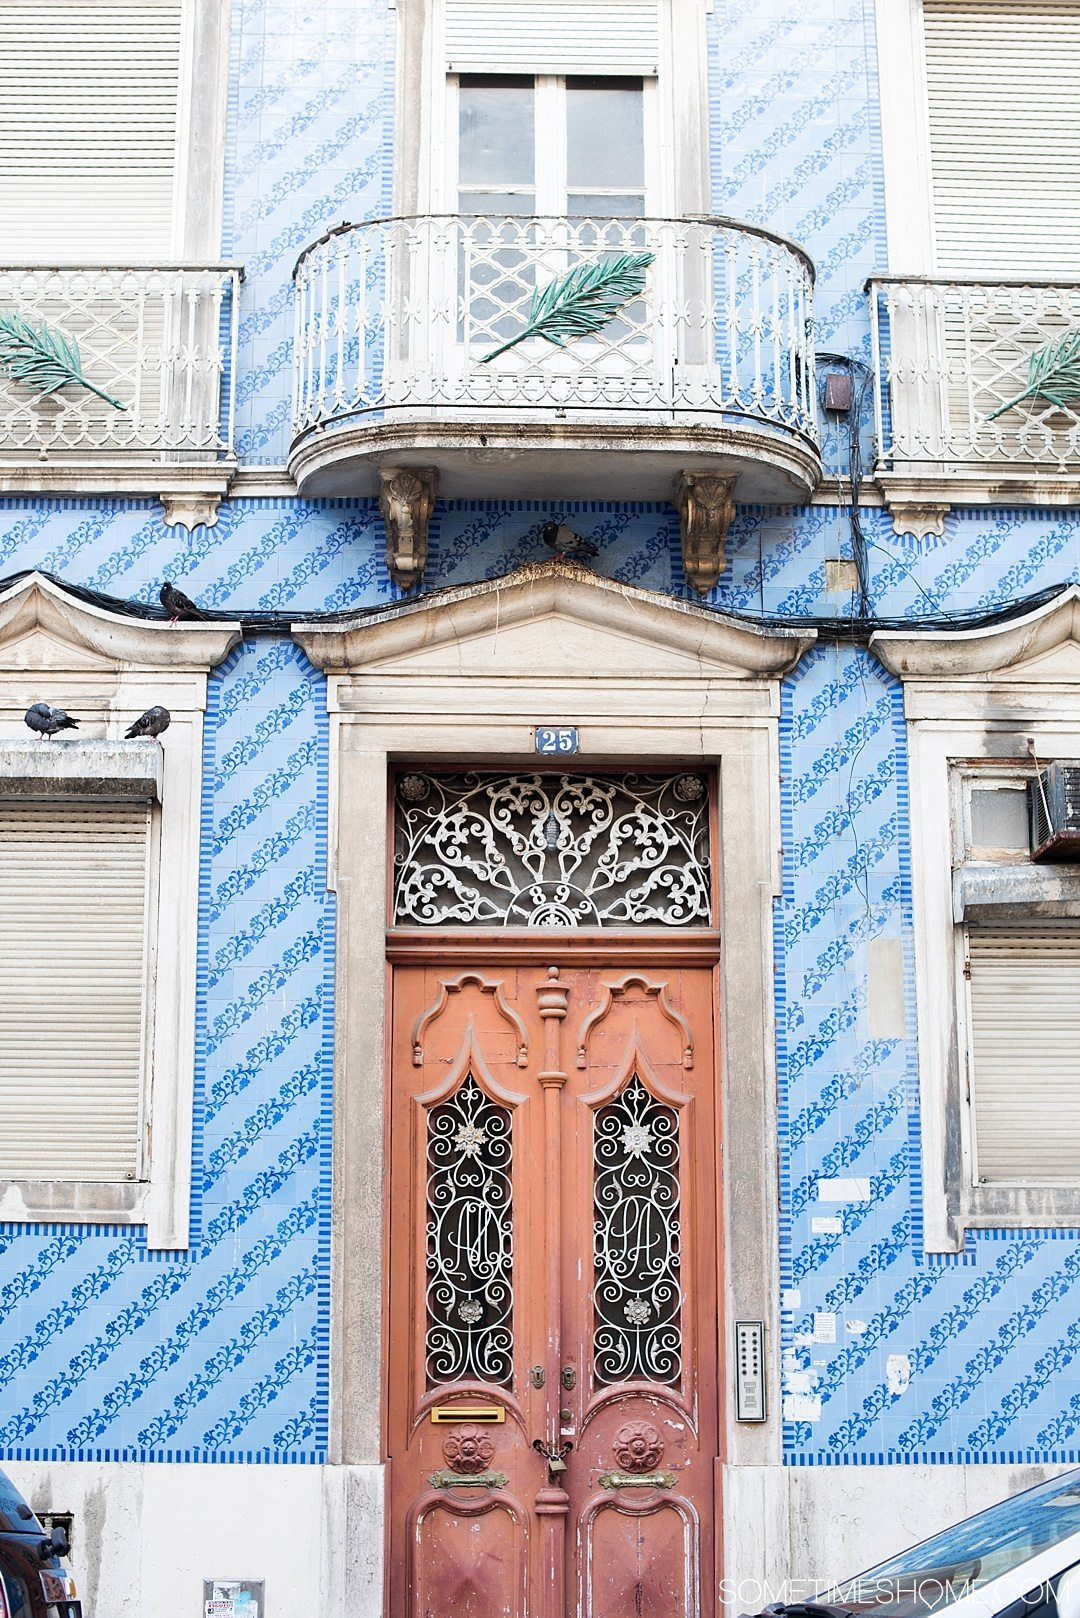 Why Lisbon is the Best City in Europe on Sometimes Home travel blog. Photo of blue hand painted tiles on the facade of a building.